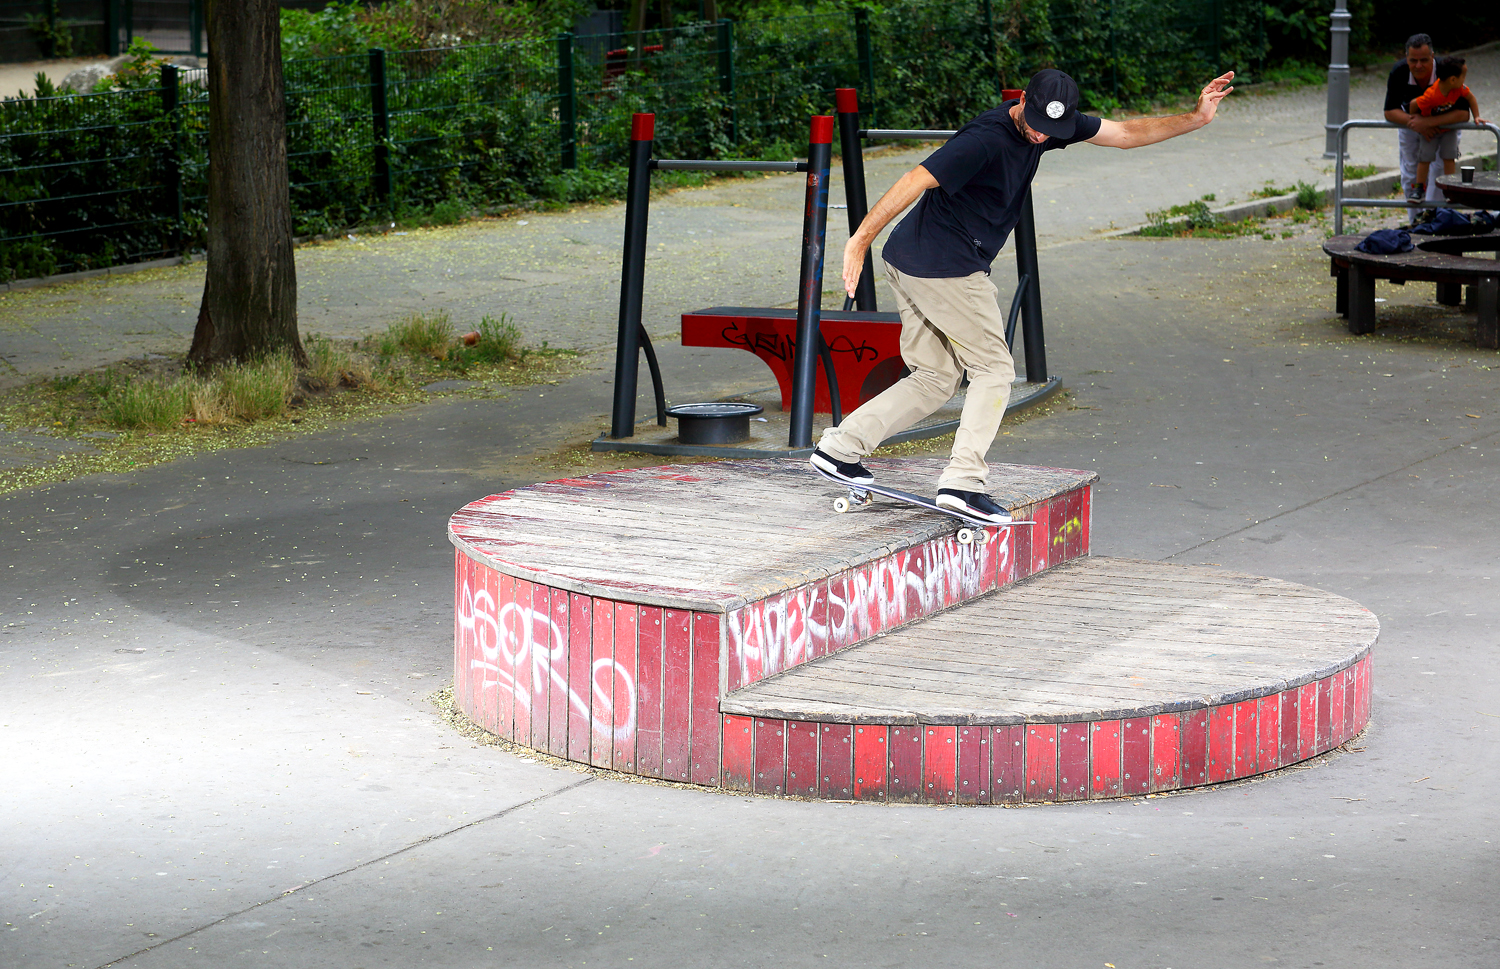 Mike Carroll – Backside Lipslide